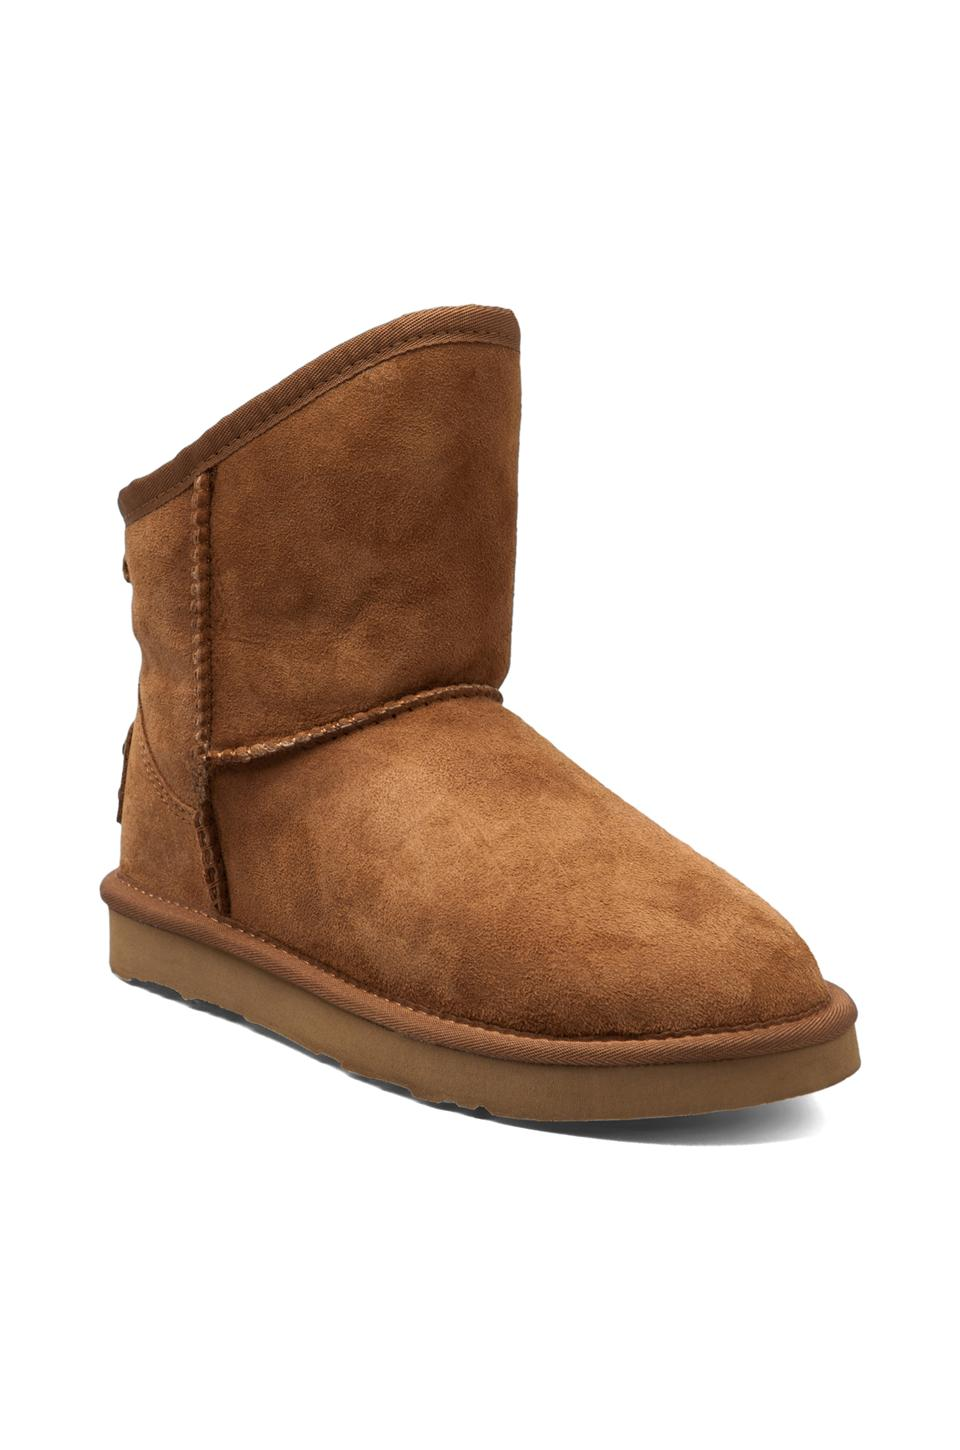 Australia Luxe Collective Cosy Extra Short with Sheep Shearling in Chestnut